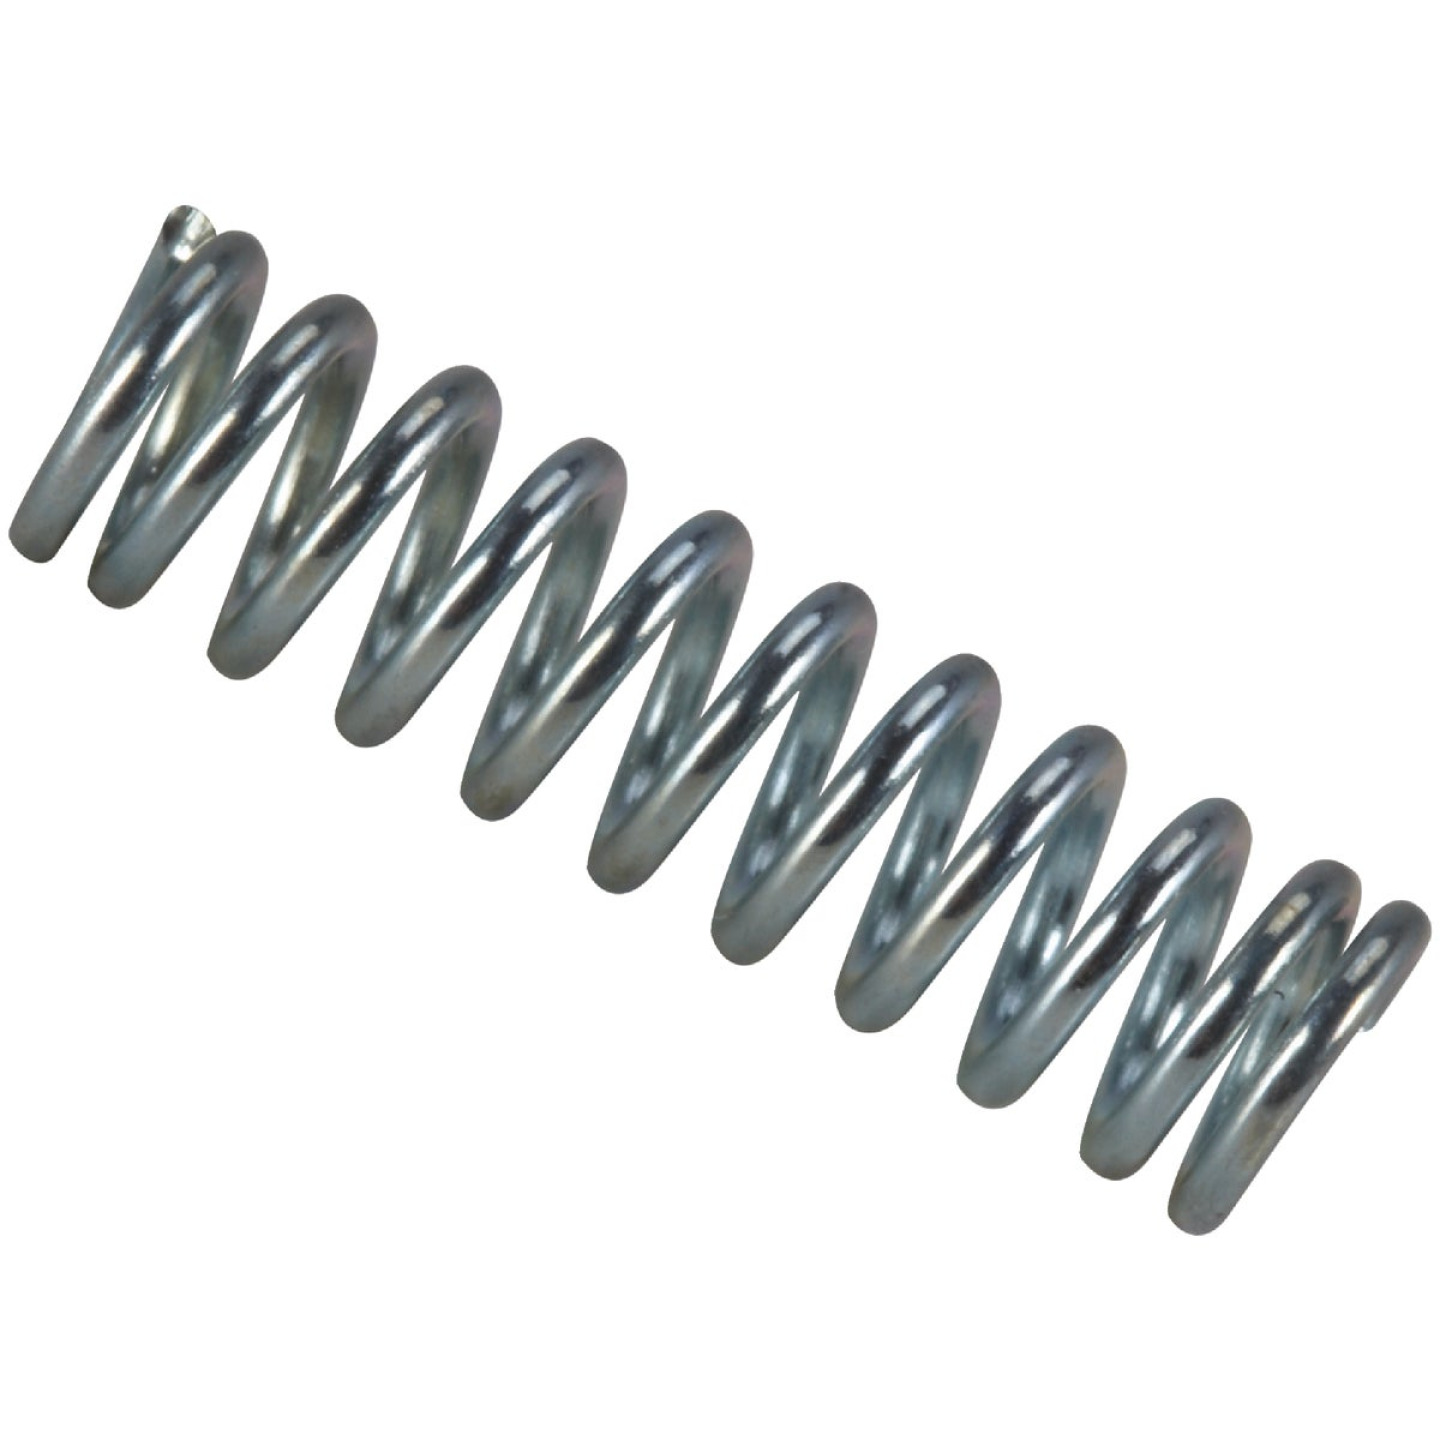 Century Spring 2-1/2 In. x 5/8 In. Compression Spring (2 Count) Image 1